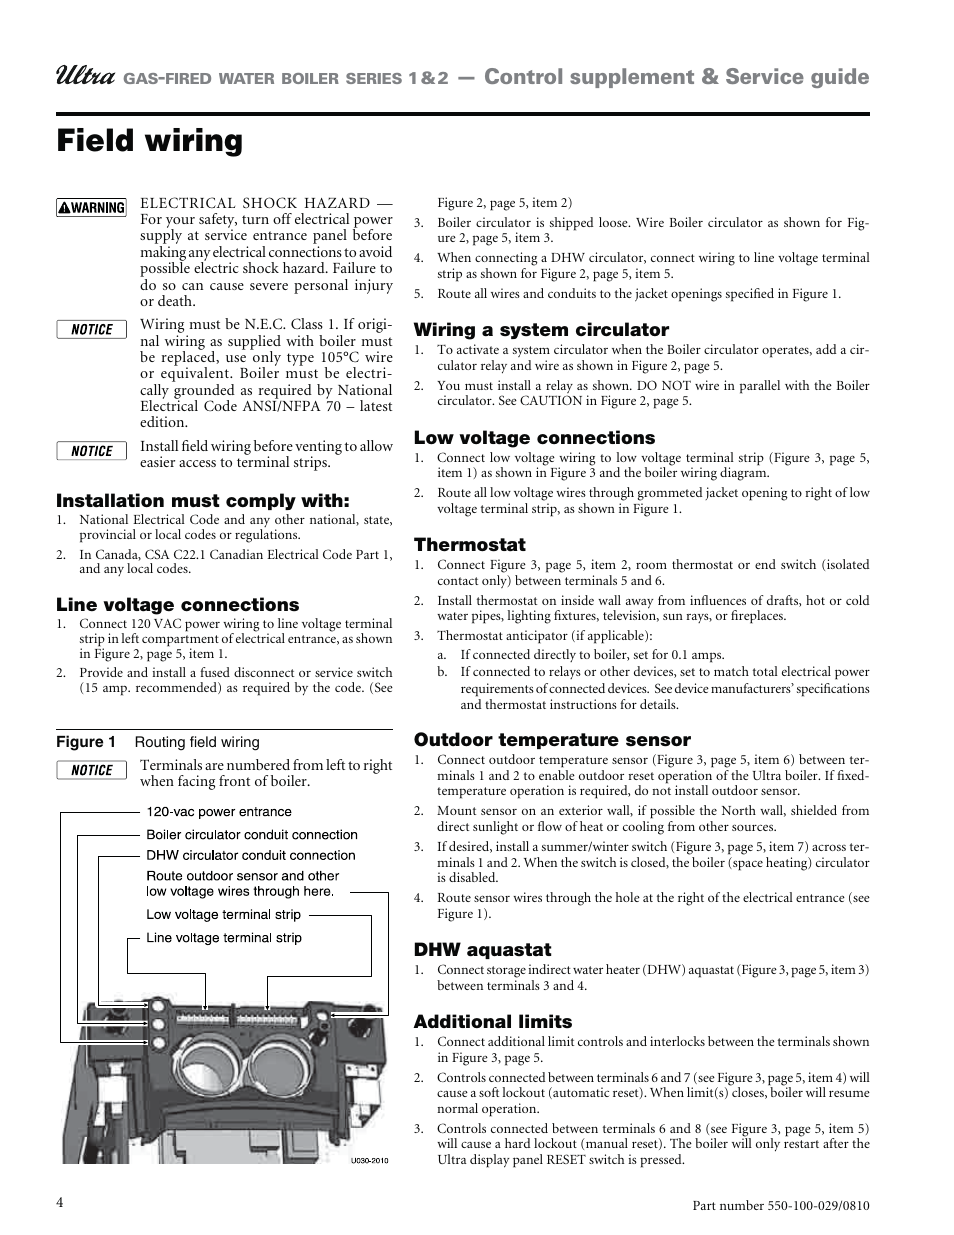 Canadian Electrical Code Low Voltage Wiring Trusted Diagrams Canada Field Control Supplement Service Guide Weil Mclain Ultra Household Diagram